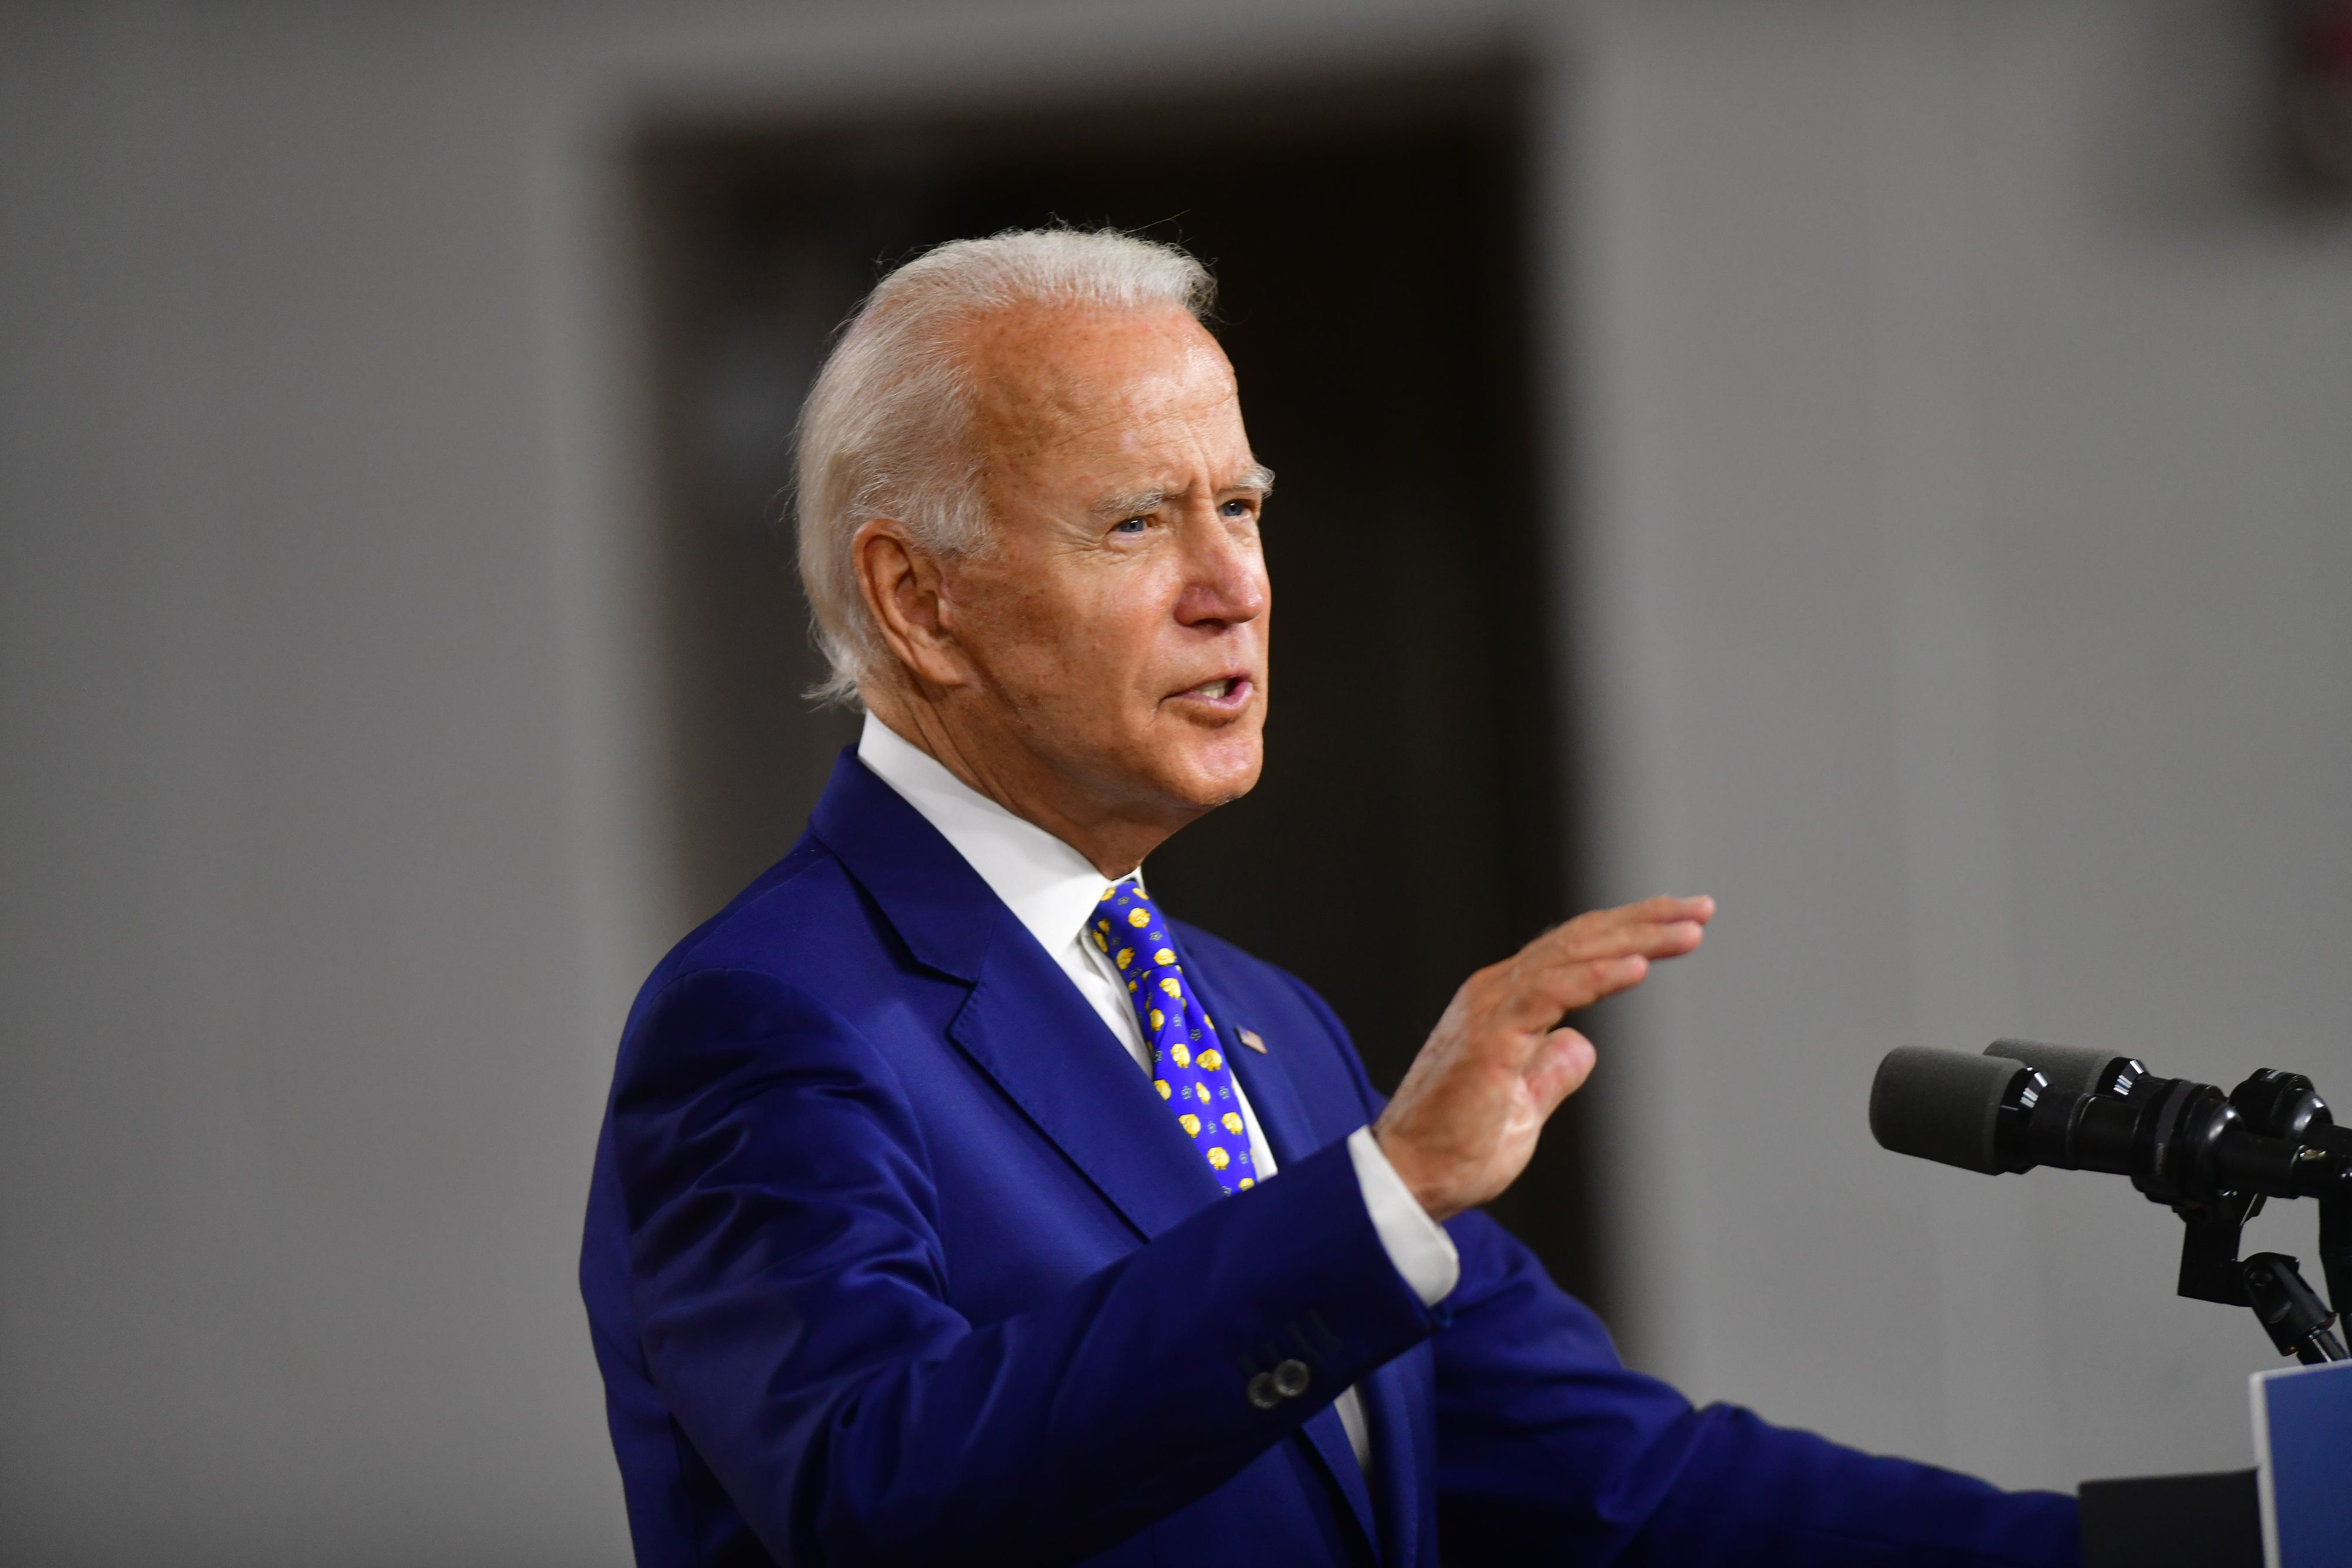 Who Was Joseph R Biden Sr Joe Biden S Father Around christmas 2015, former senior scottish correspondent cara ellison and i got smashed and played who's your daddy while everyone else was at the office party. who was joseph r biden sr joe biden